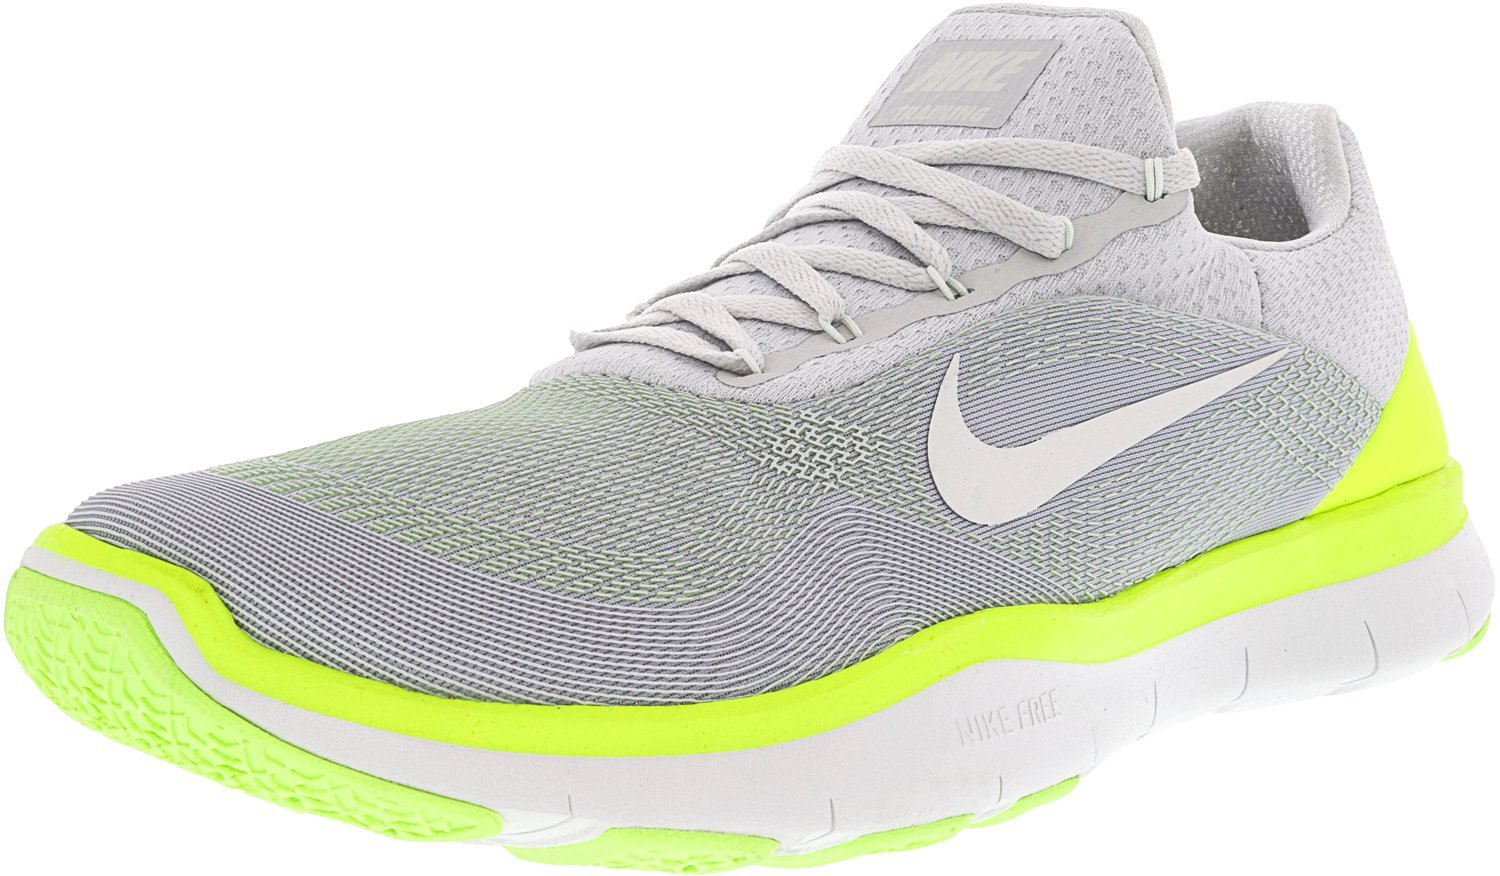 2f09ee2297cd0 Amazon.com: Nike Free Trainer v7 Pure Platinum/Volt/Ghost Green/Off-White  Men's Cross Training Shoes Size 10: Nike: Sports & Outdoors